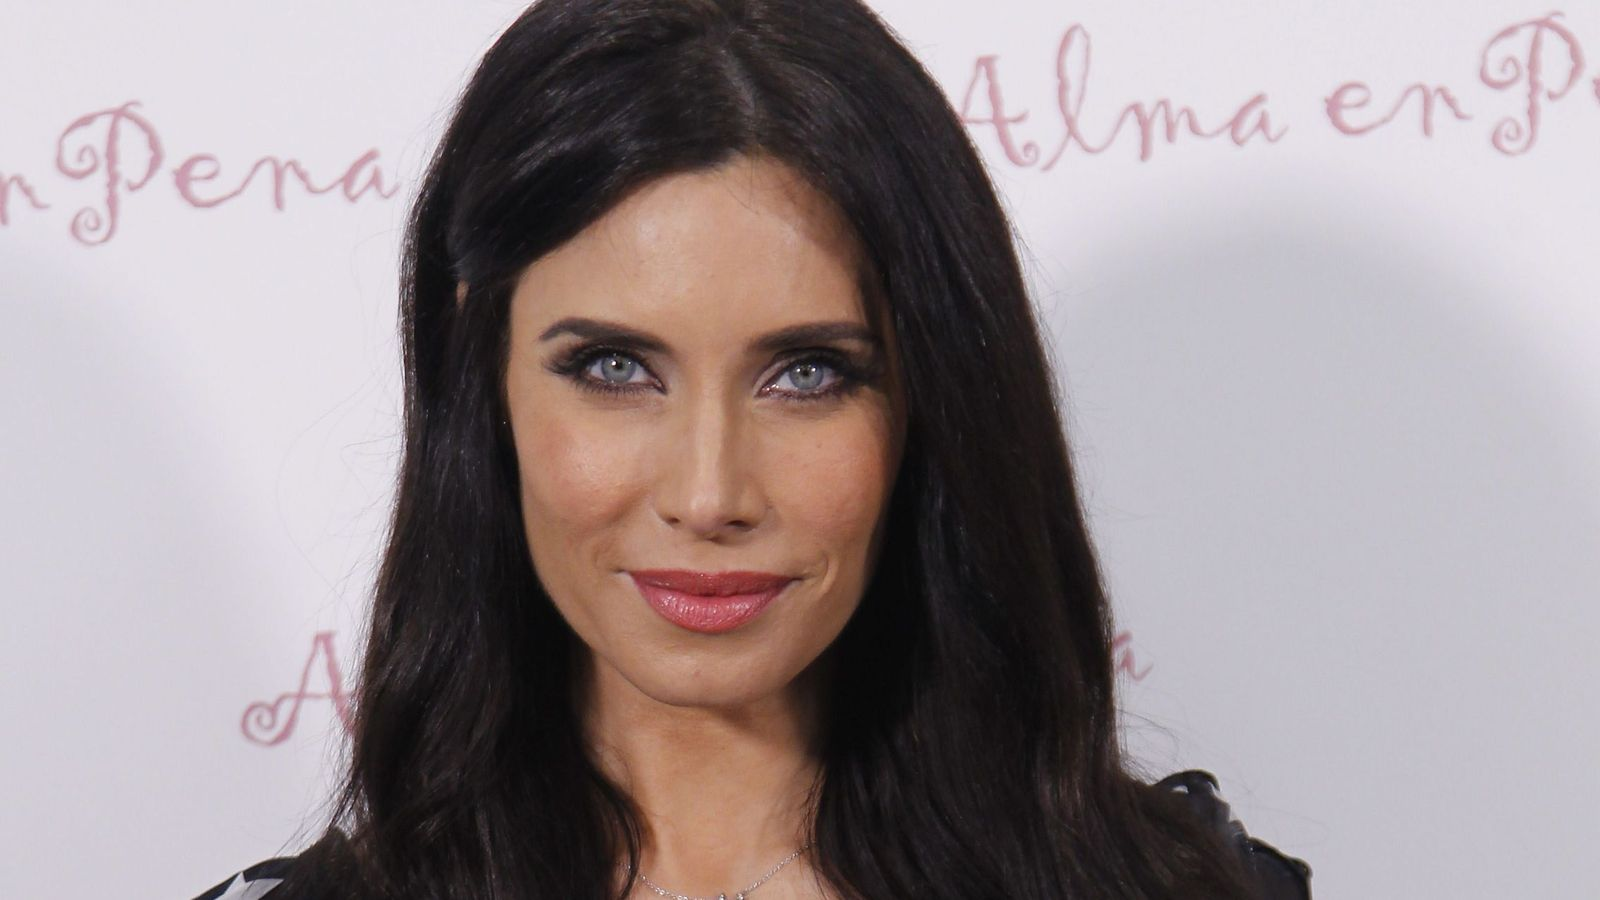 Foto: Pilar Rubio. (Cordon Press)